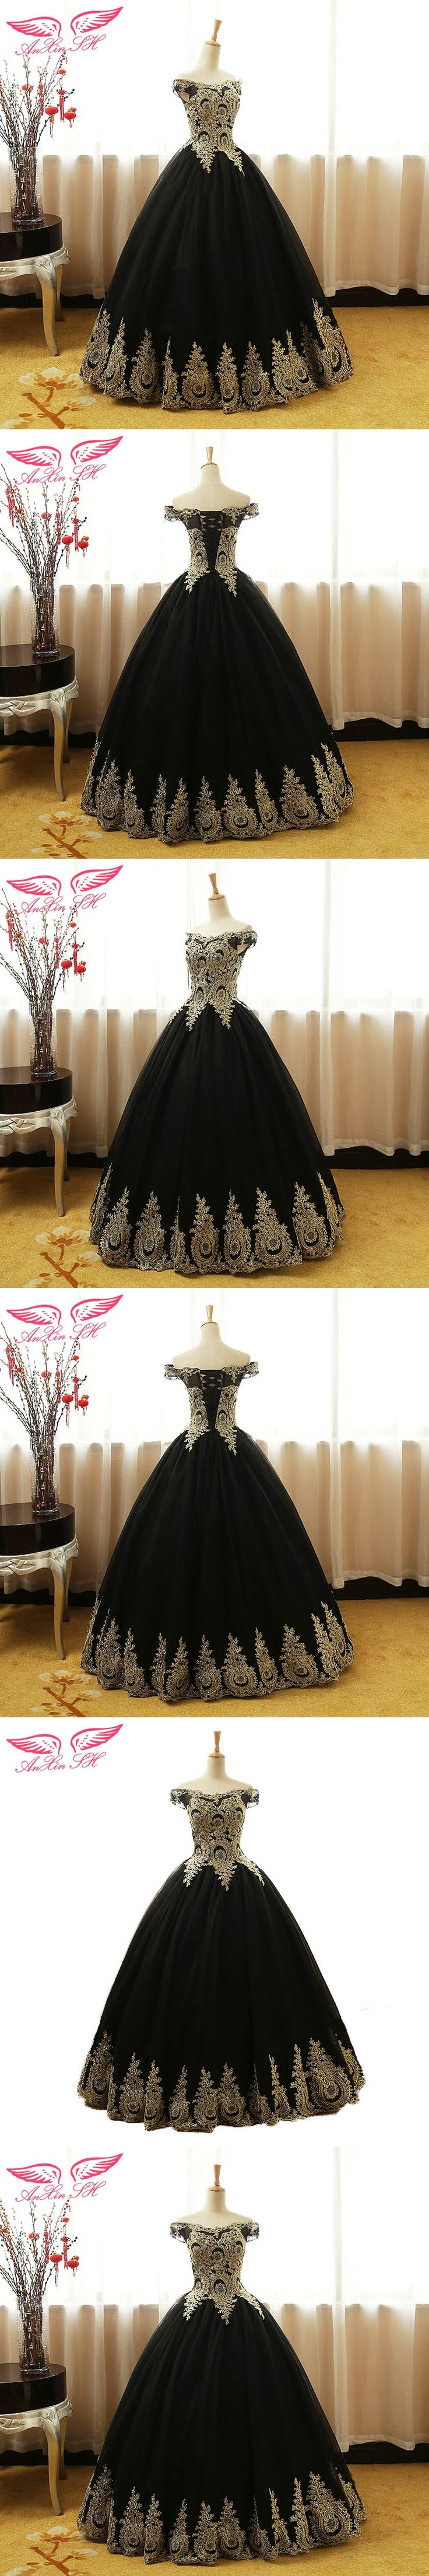 AnXin SH golden lace black lace evening dress princess golden flower lace evening dress boat neck black lace evening dress